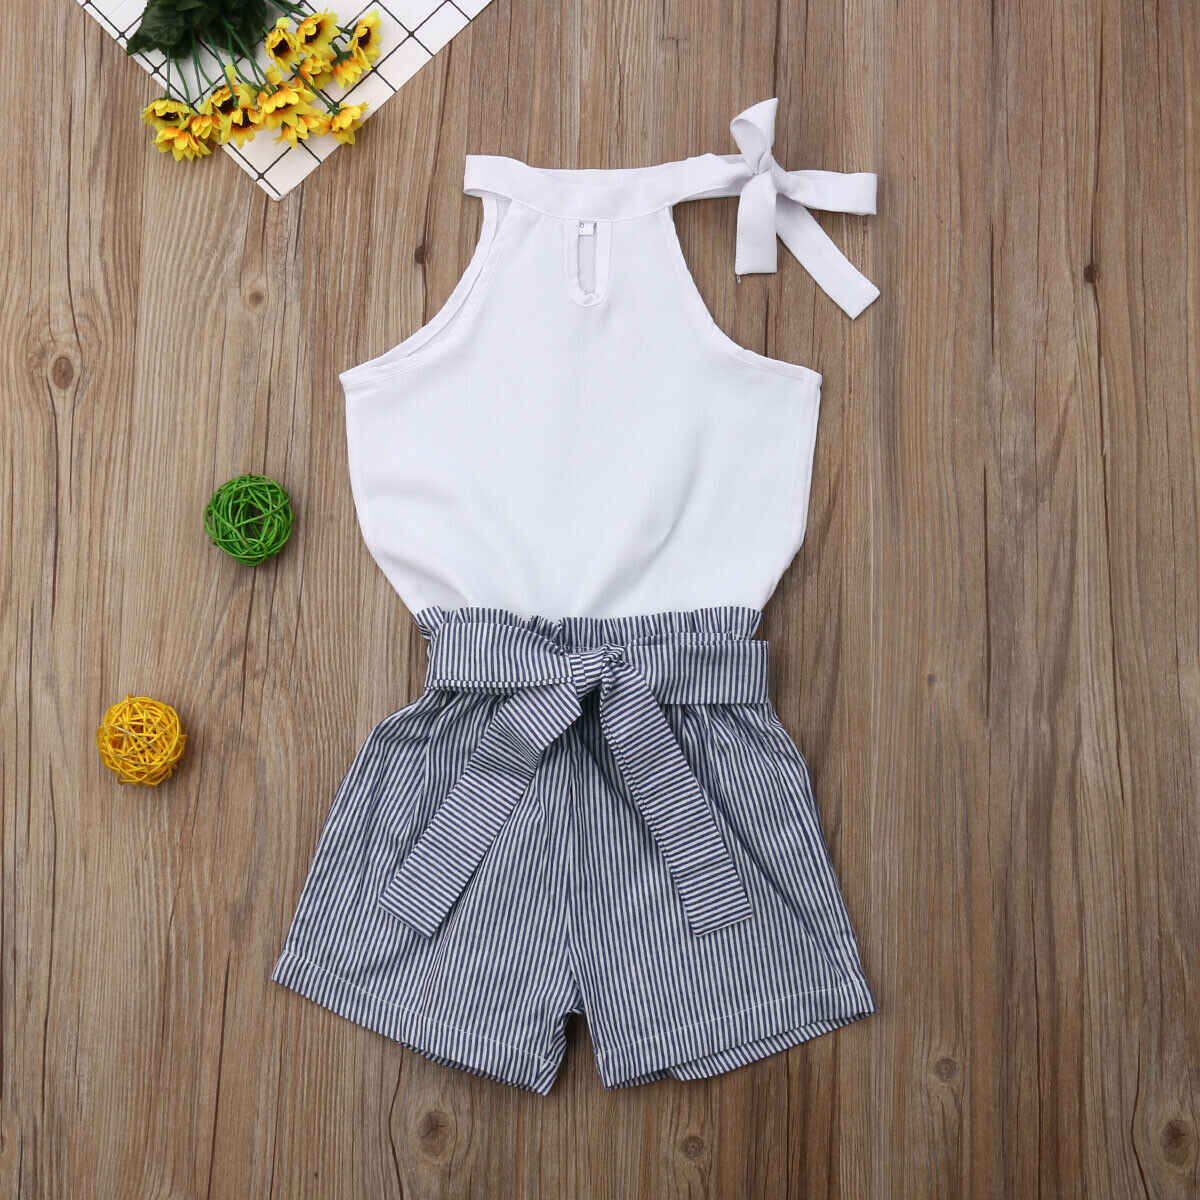 Pudcoco 2019 Toddler Kids Baby Girls Children Clothing White Sleeveless Solid Tops Striped Shorts 2Pcs Set Clothes 2-7Y arrival